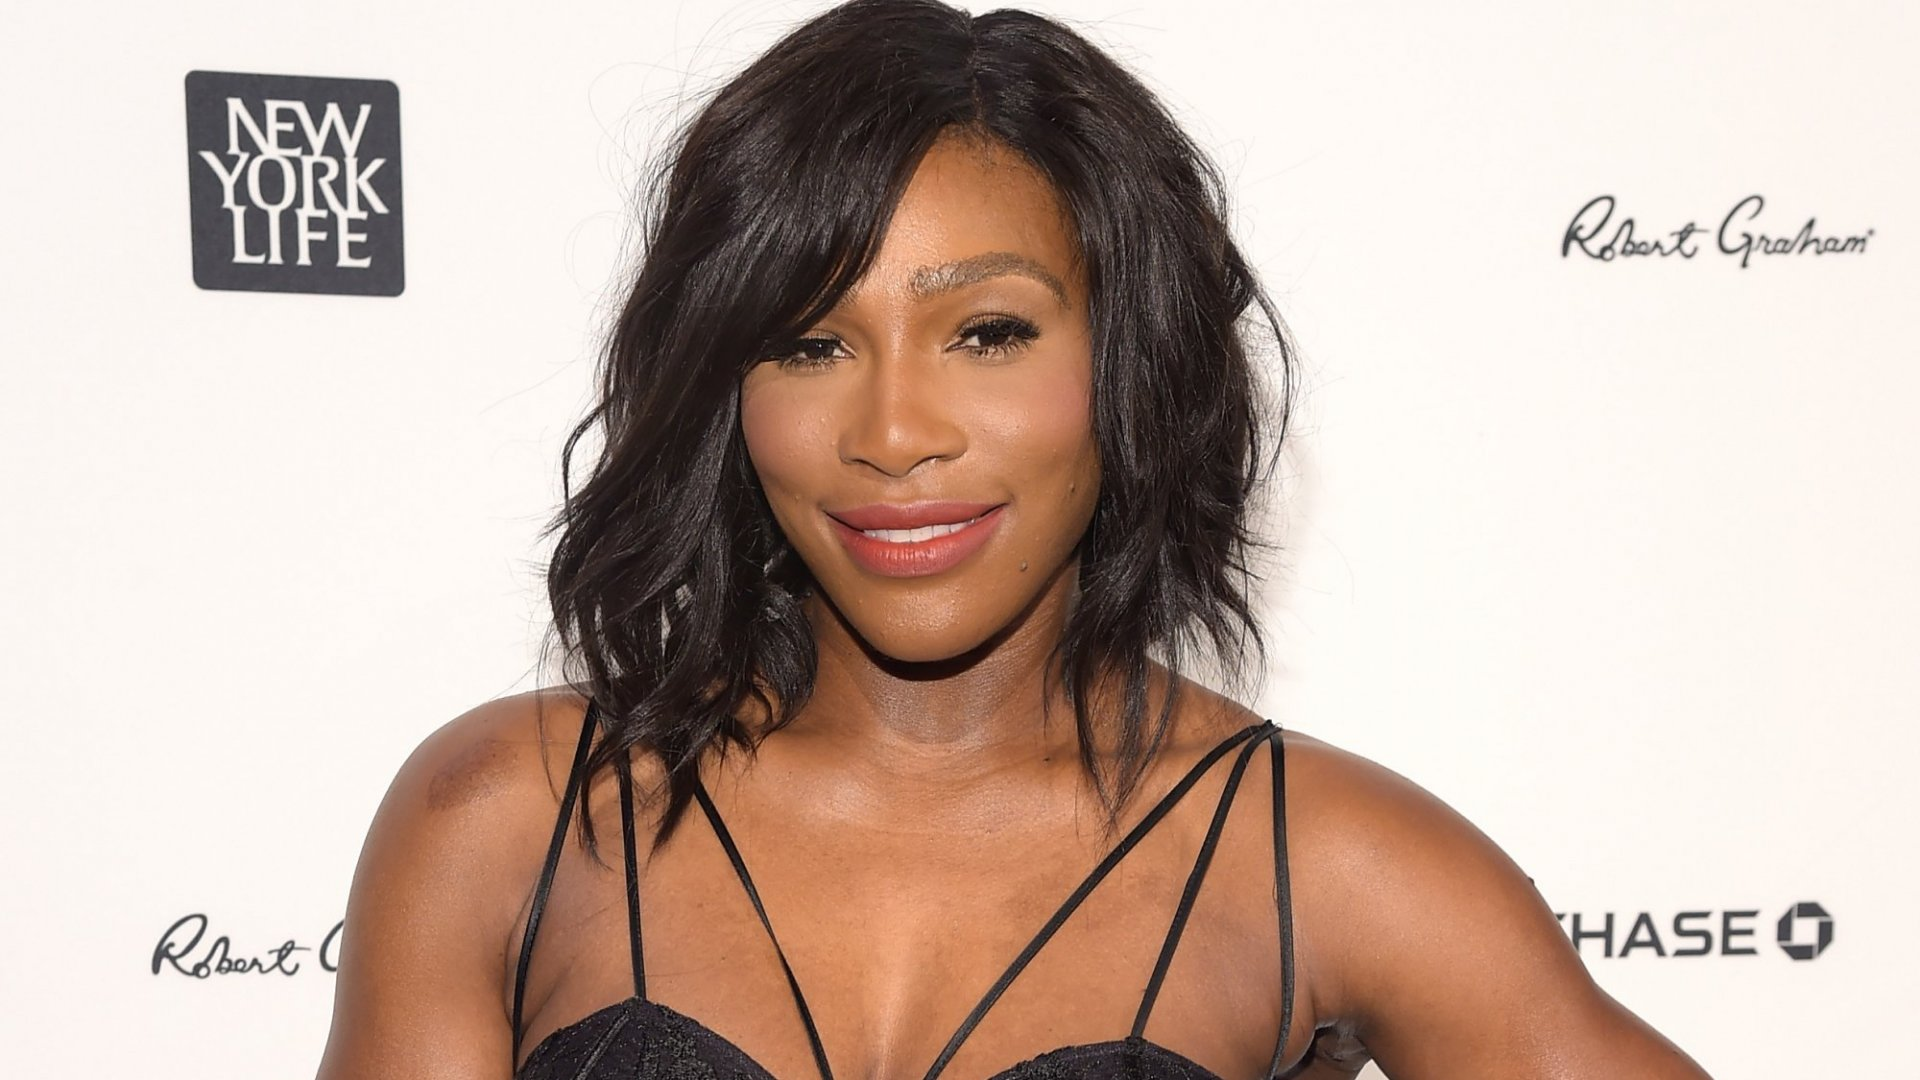 What Business Leaders Can Learn From Serena Williams' Powerful New Documentary